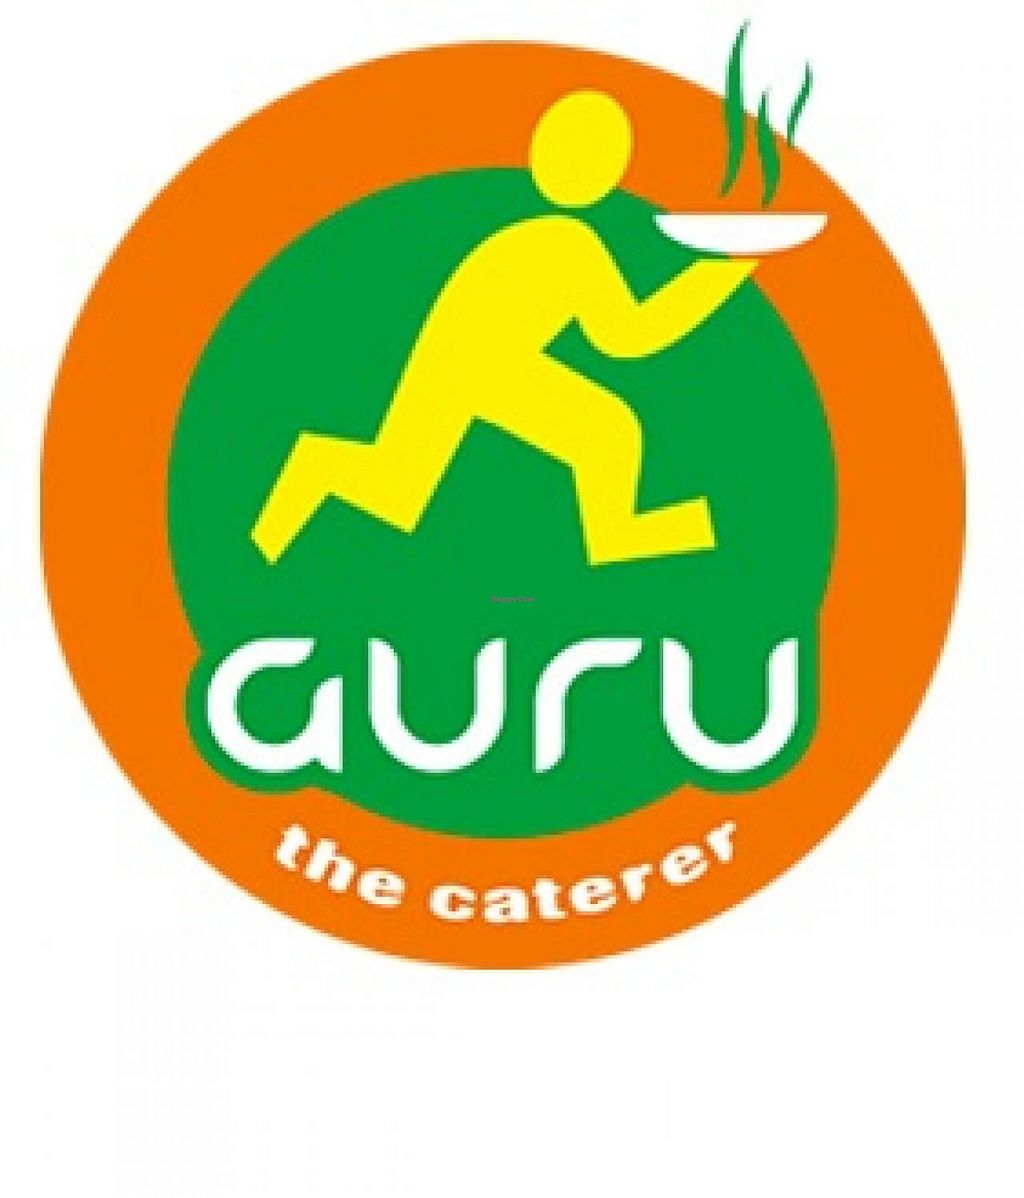 """Photo of D'Guru  by <a href=""""/members/profile/community"""">community</a> <br/>D'Guru <br/> April 22, 2014  - <a href='/contact/abuse/image/45874/68280'>Report</a>"""